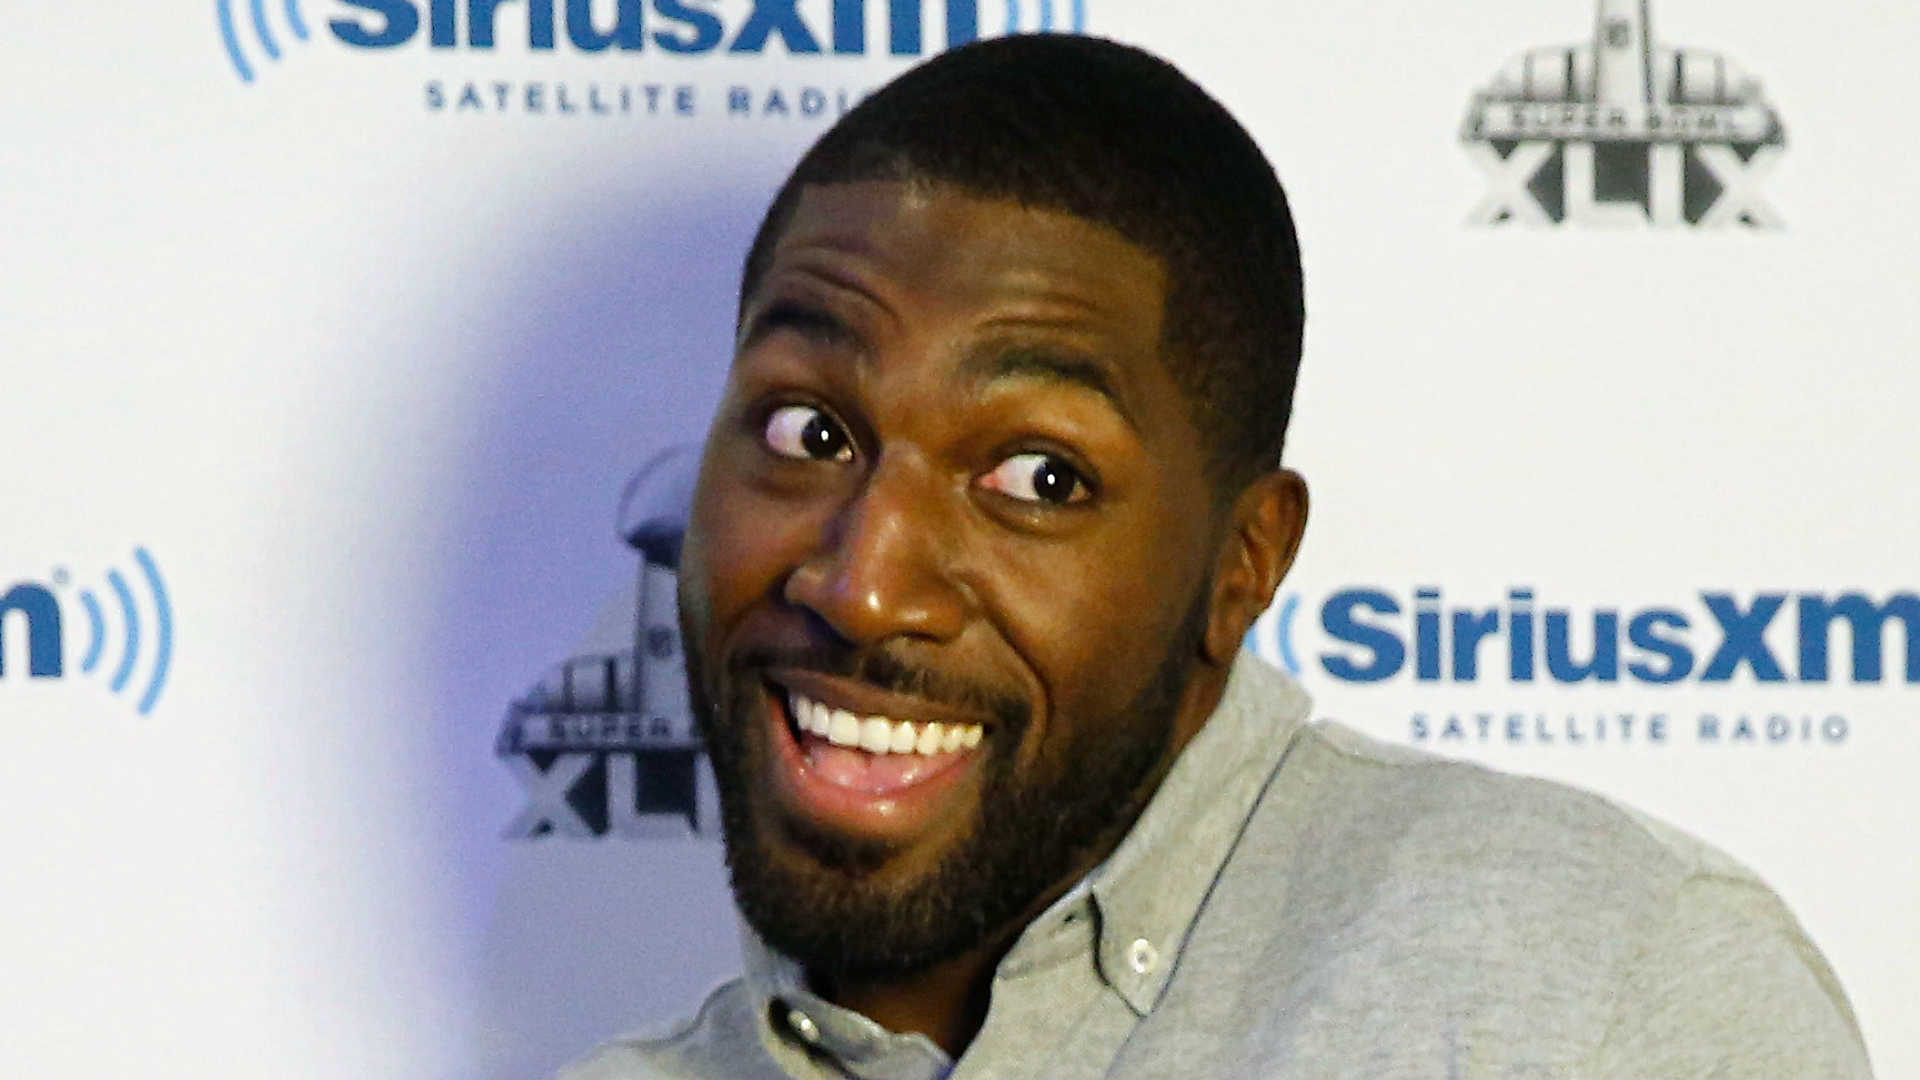 Greg Jennings' April Fools' Day prank